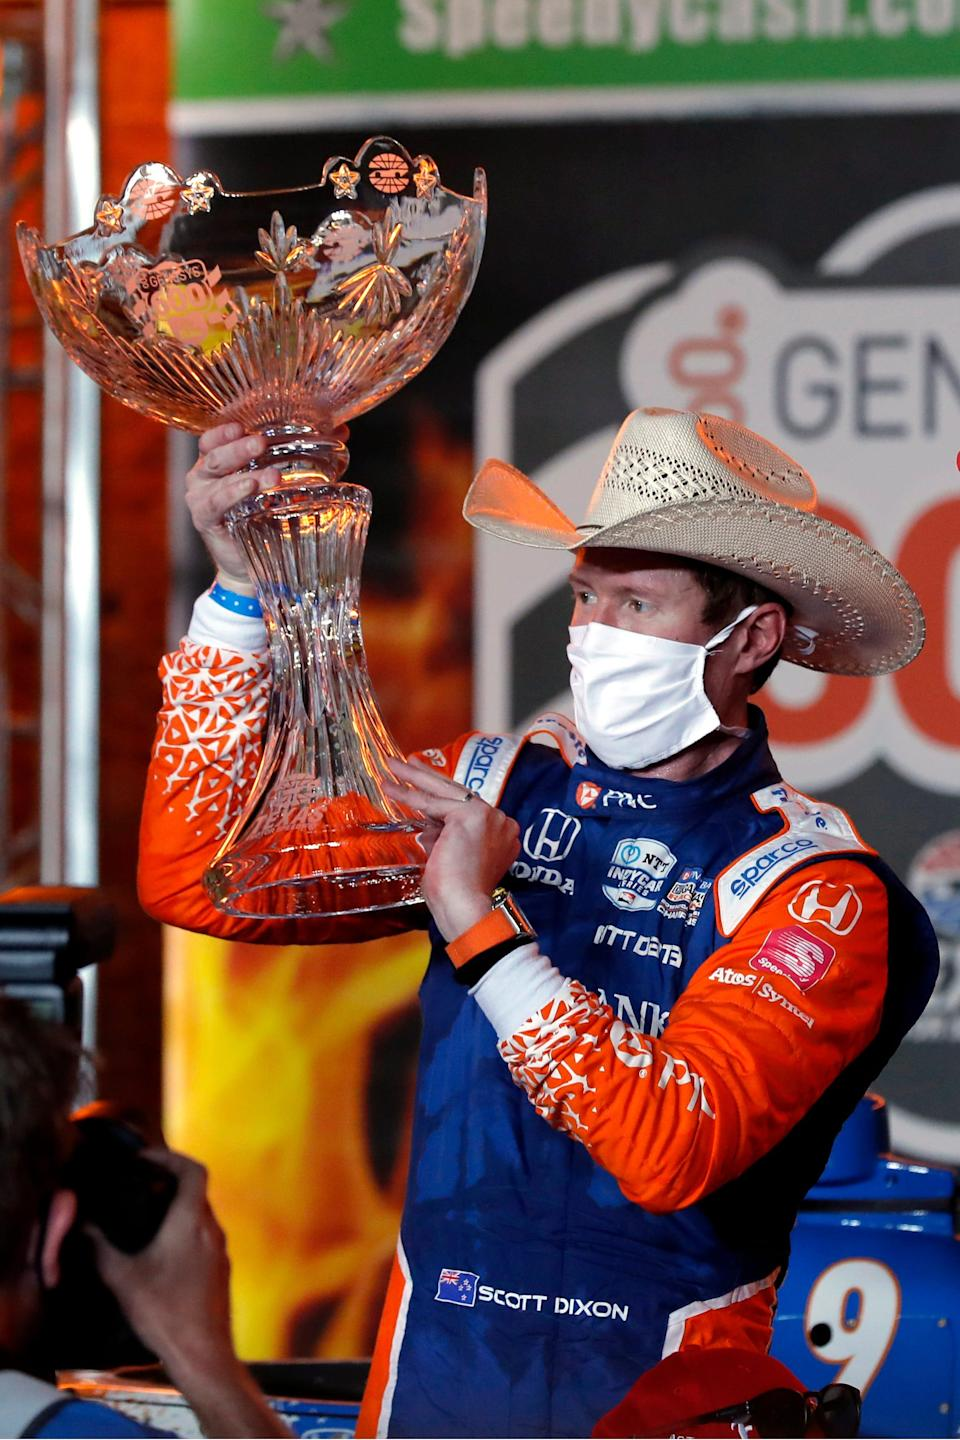 Scott Dixon holds up the winner's trophy after winning at Texas Motor Speedway on June 6, 2020.